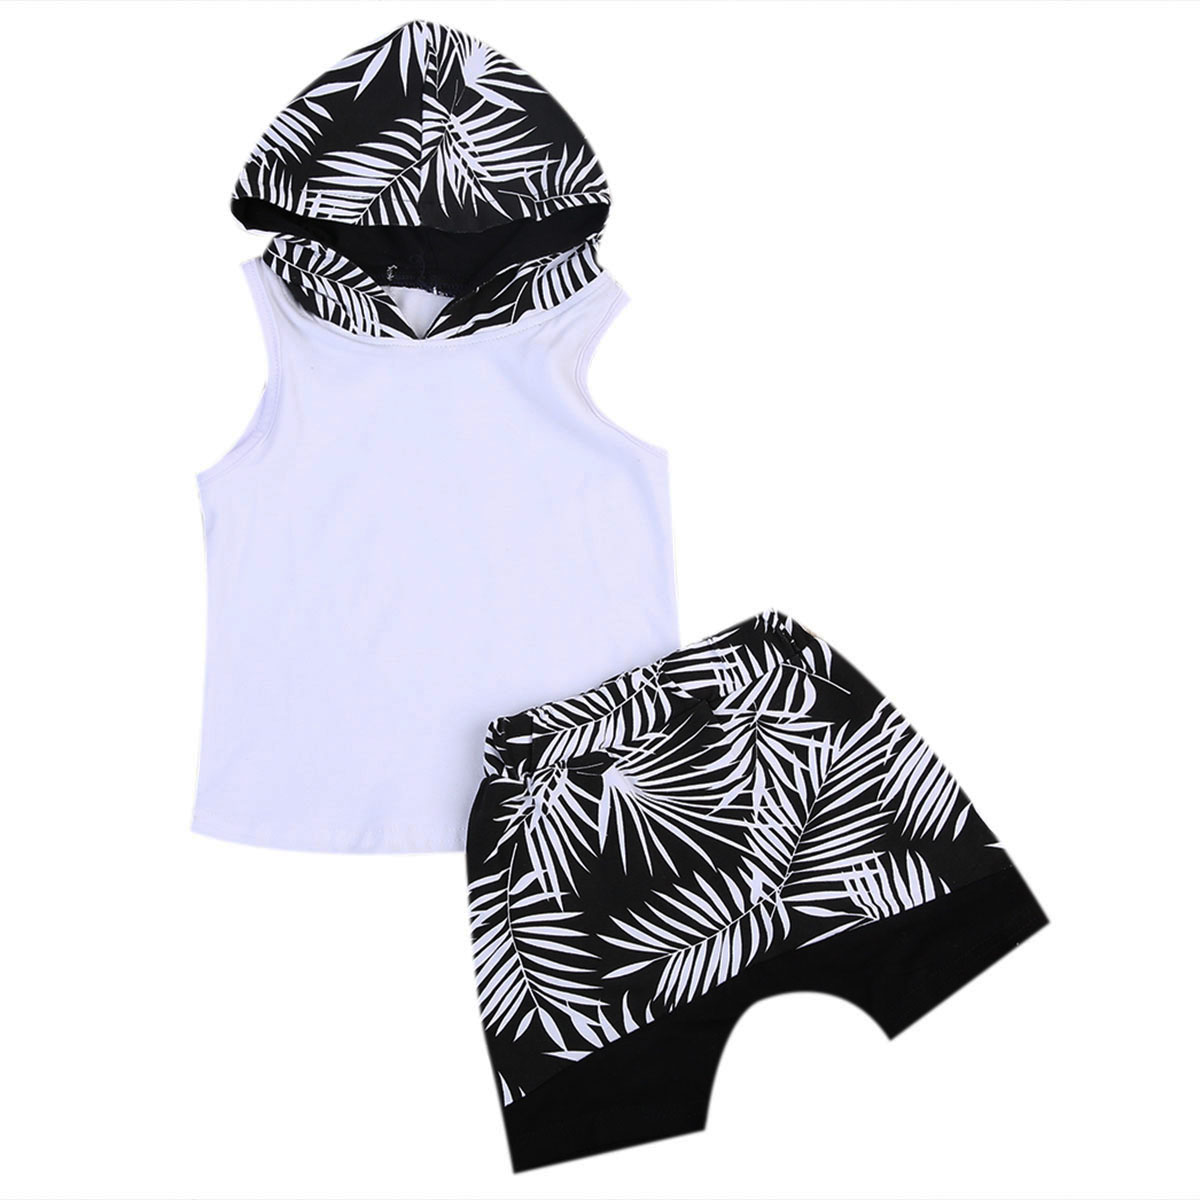 Newborn Kid Baby Boy Clothes Sleeveless Hooded Vest T-Shirt Tops+Shorts 2Pcs sets Kids Girls Summer Cotton Cool Fashion Suits springfield springfield sp014ewjbt92